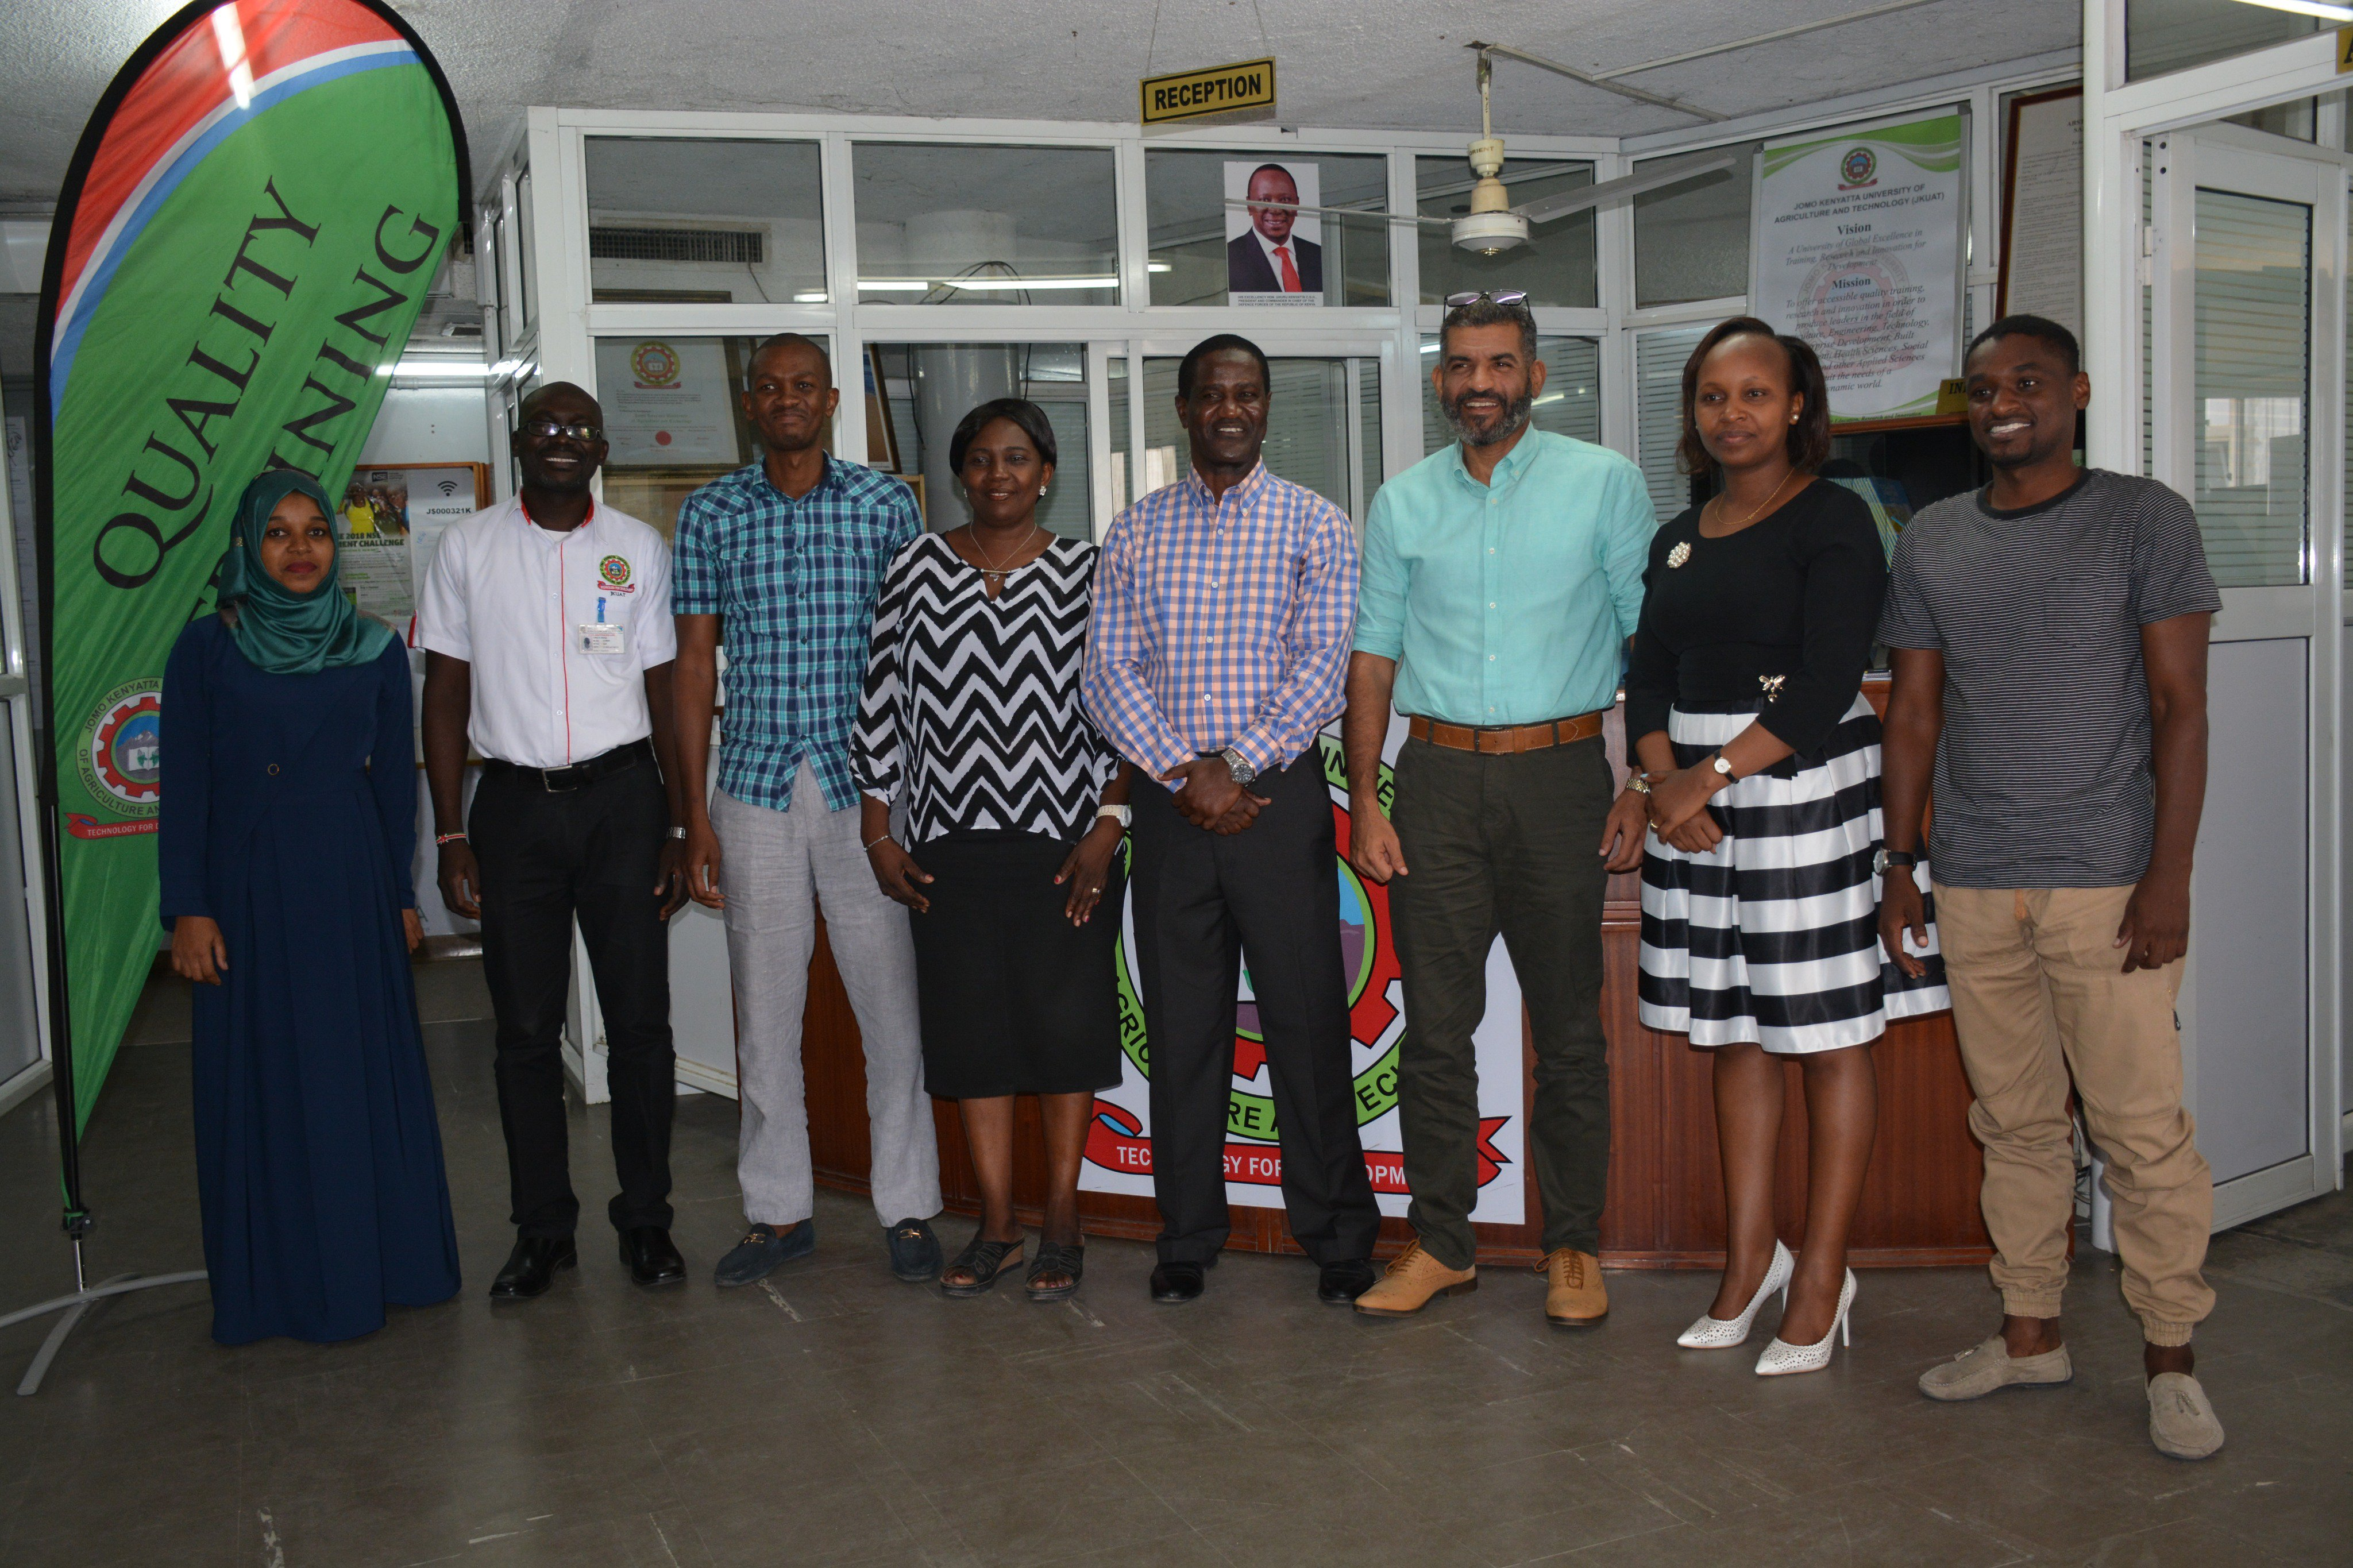 Dr. Fridah poses for a photo with Mvita MP and staff members in 2018 after partnership talks to set up Constituency Innovation Hub.